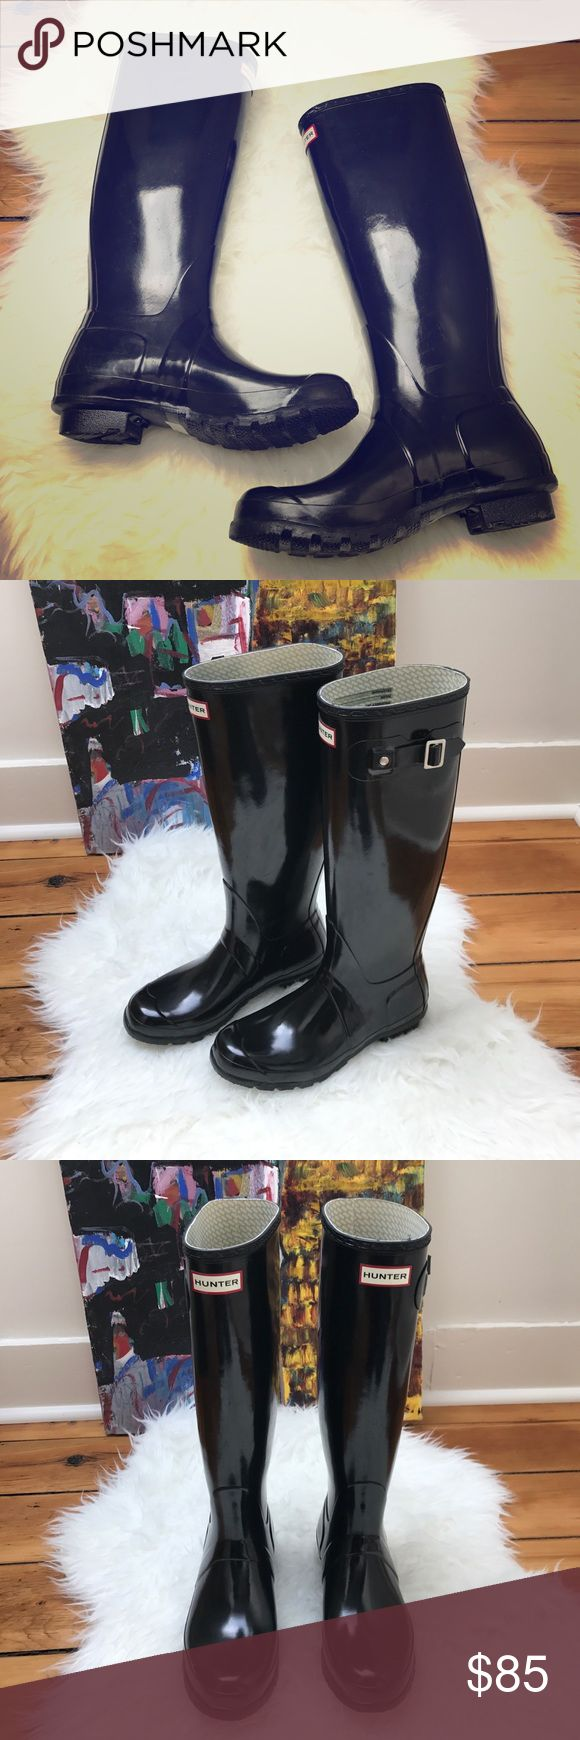 Hunter Boot USA Gloss Rain Boot Black size 8 Hunter boot USA original refined high gloss finish rain boot. Waterproof. Size 8 although I typically wear an 8 1/2-9, these fit great. Barely worn. Some discoloration inside due to jeans. See pic. New refined, tailored silhouette. Slim leg fit. Please look at pic for sizing. Hunter Boots Shoes Winter & Rain Boots